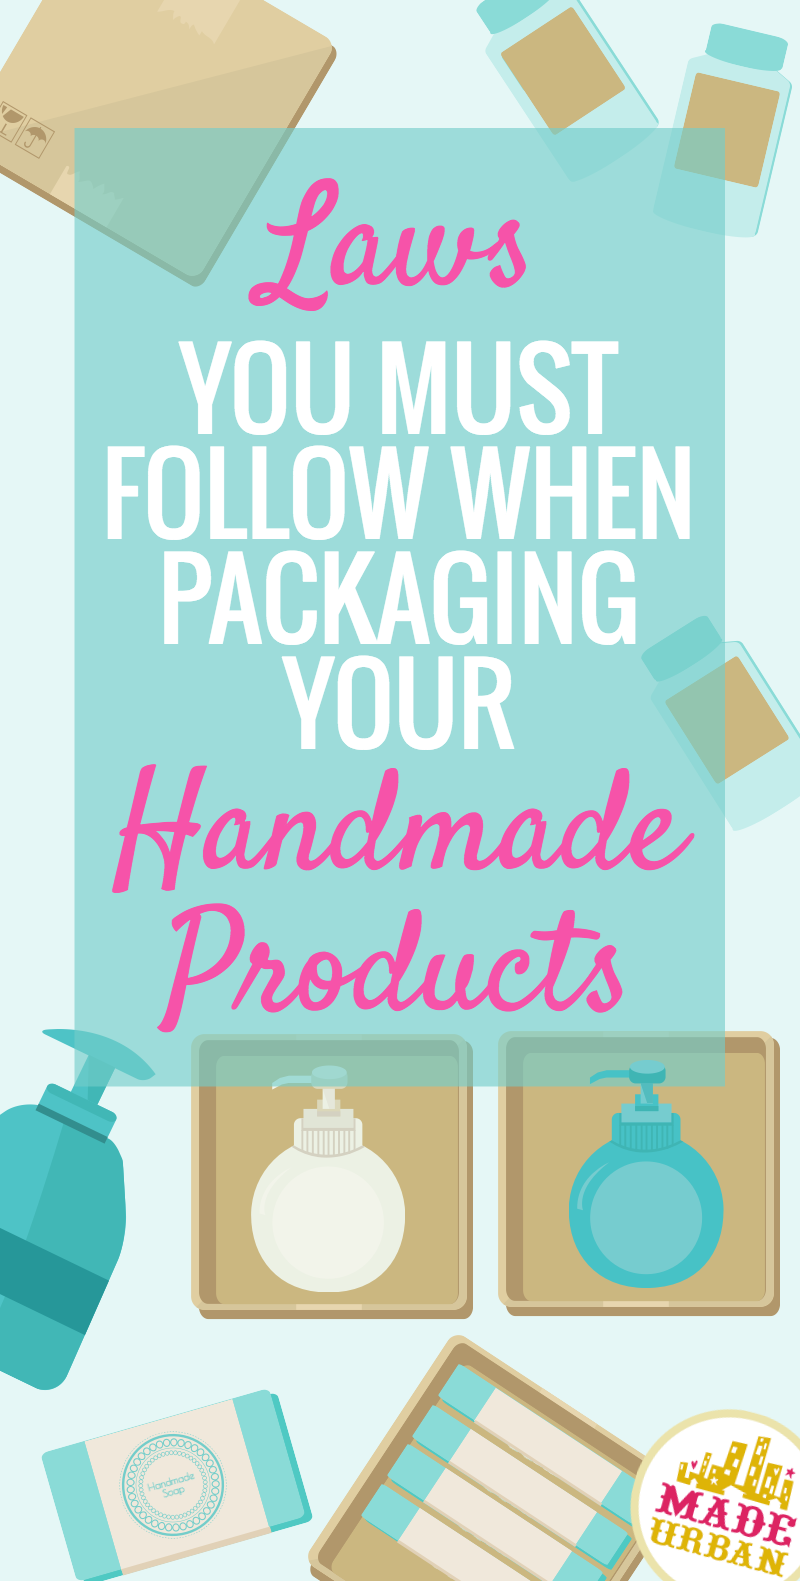 laws you must follow when packaging your handmade products business infosmall business name ideasetsy